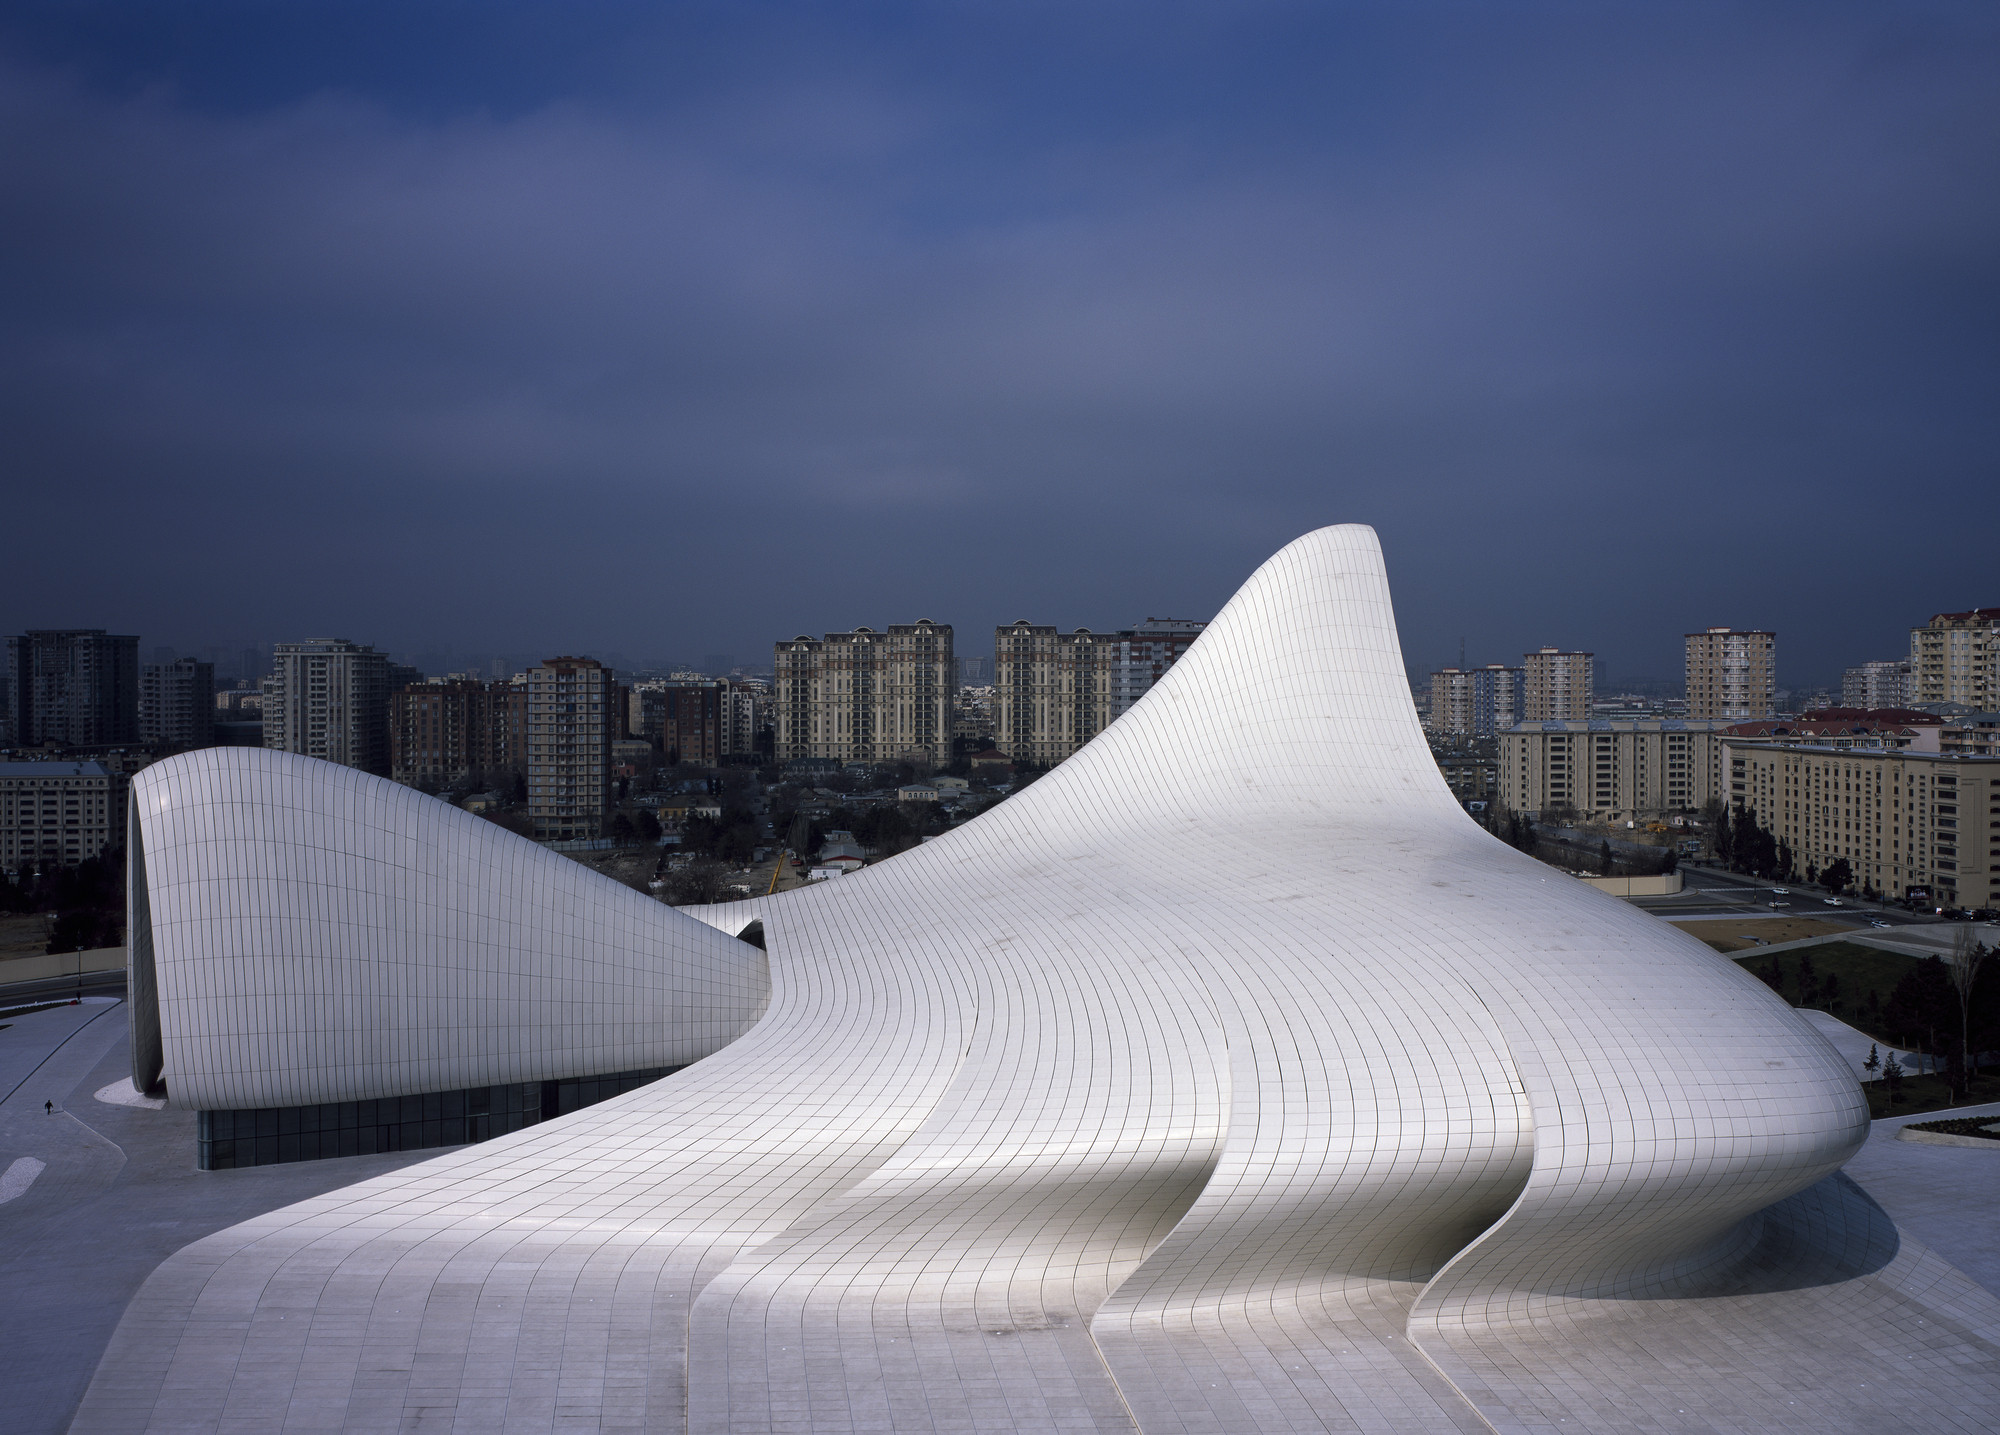 Heydar Aliyev Center / Zaha Hadid Architects. Image © Hélène Binet